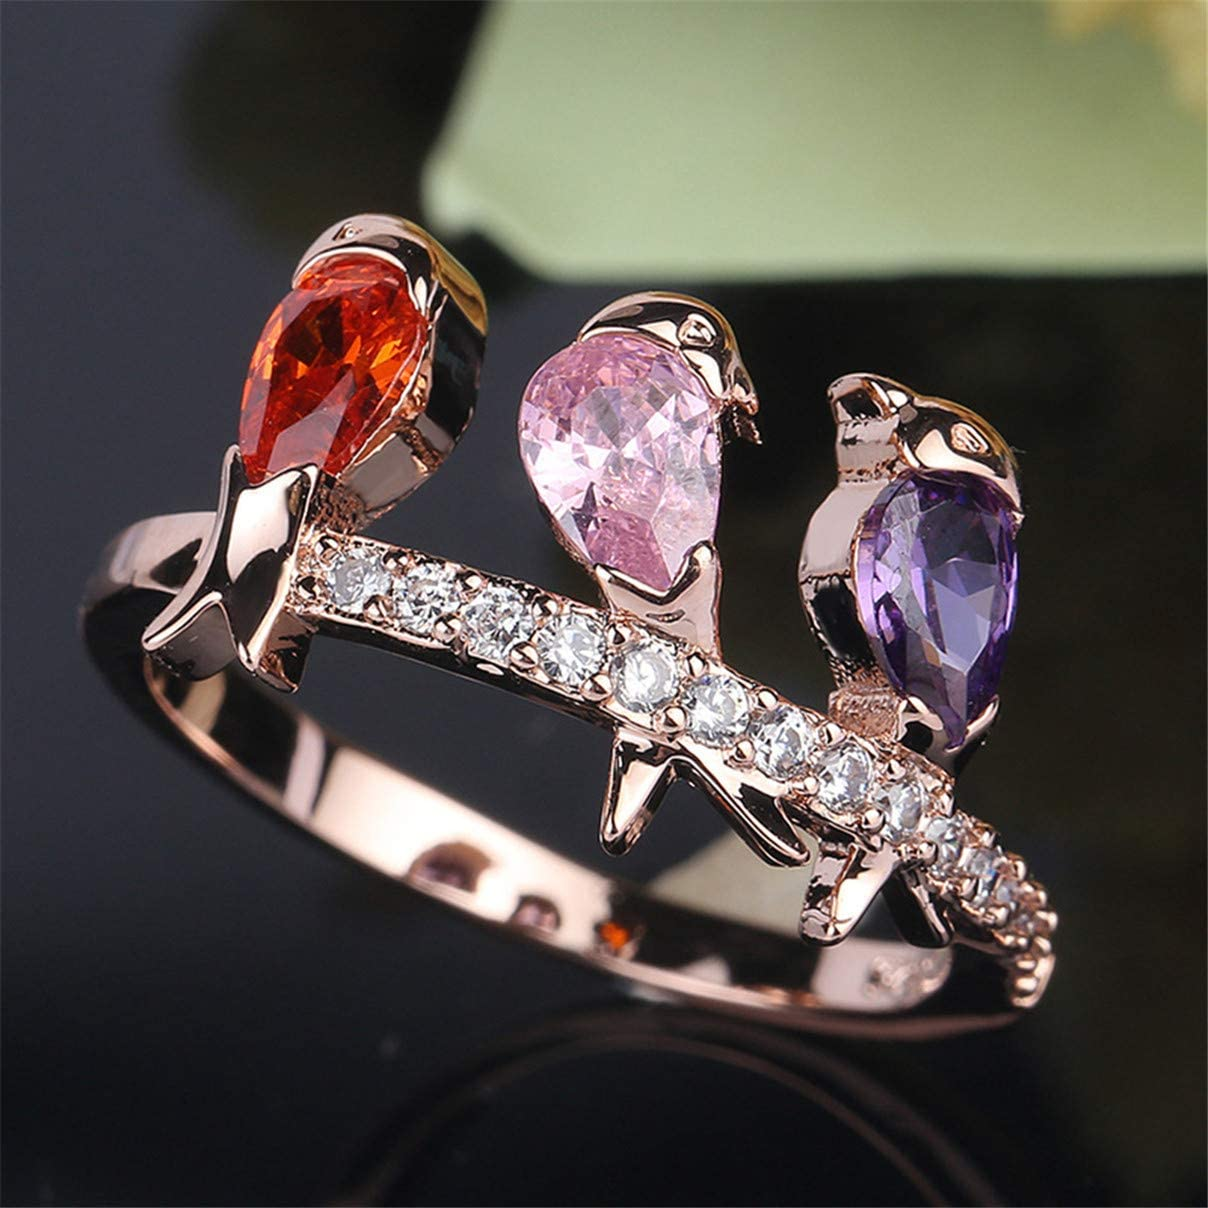 Essencedelight Animal Rings with Crystal Charming Lovely Bird Cubic Zircon Rhinestone Ring for Women Girls Jewelry Gift